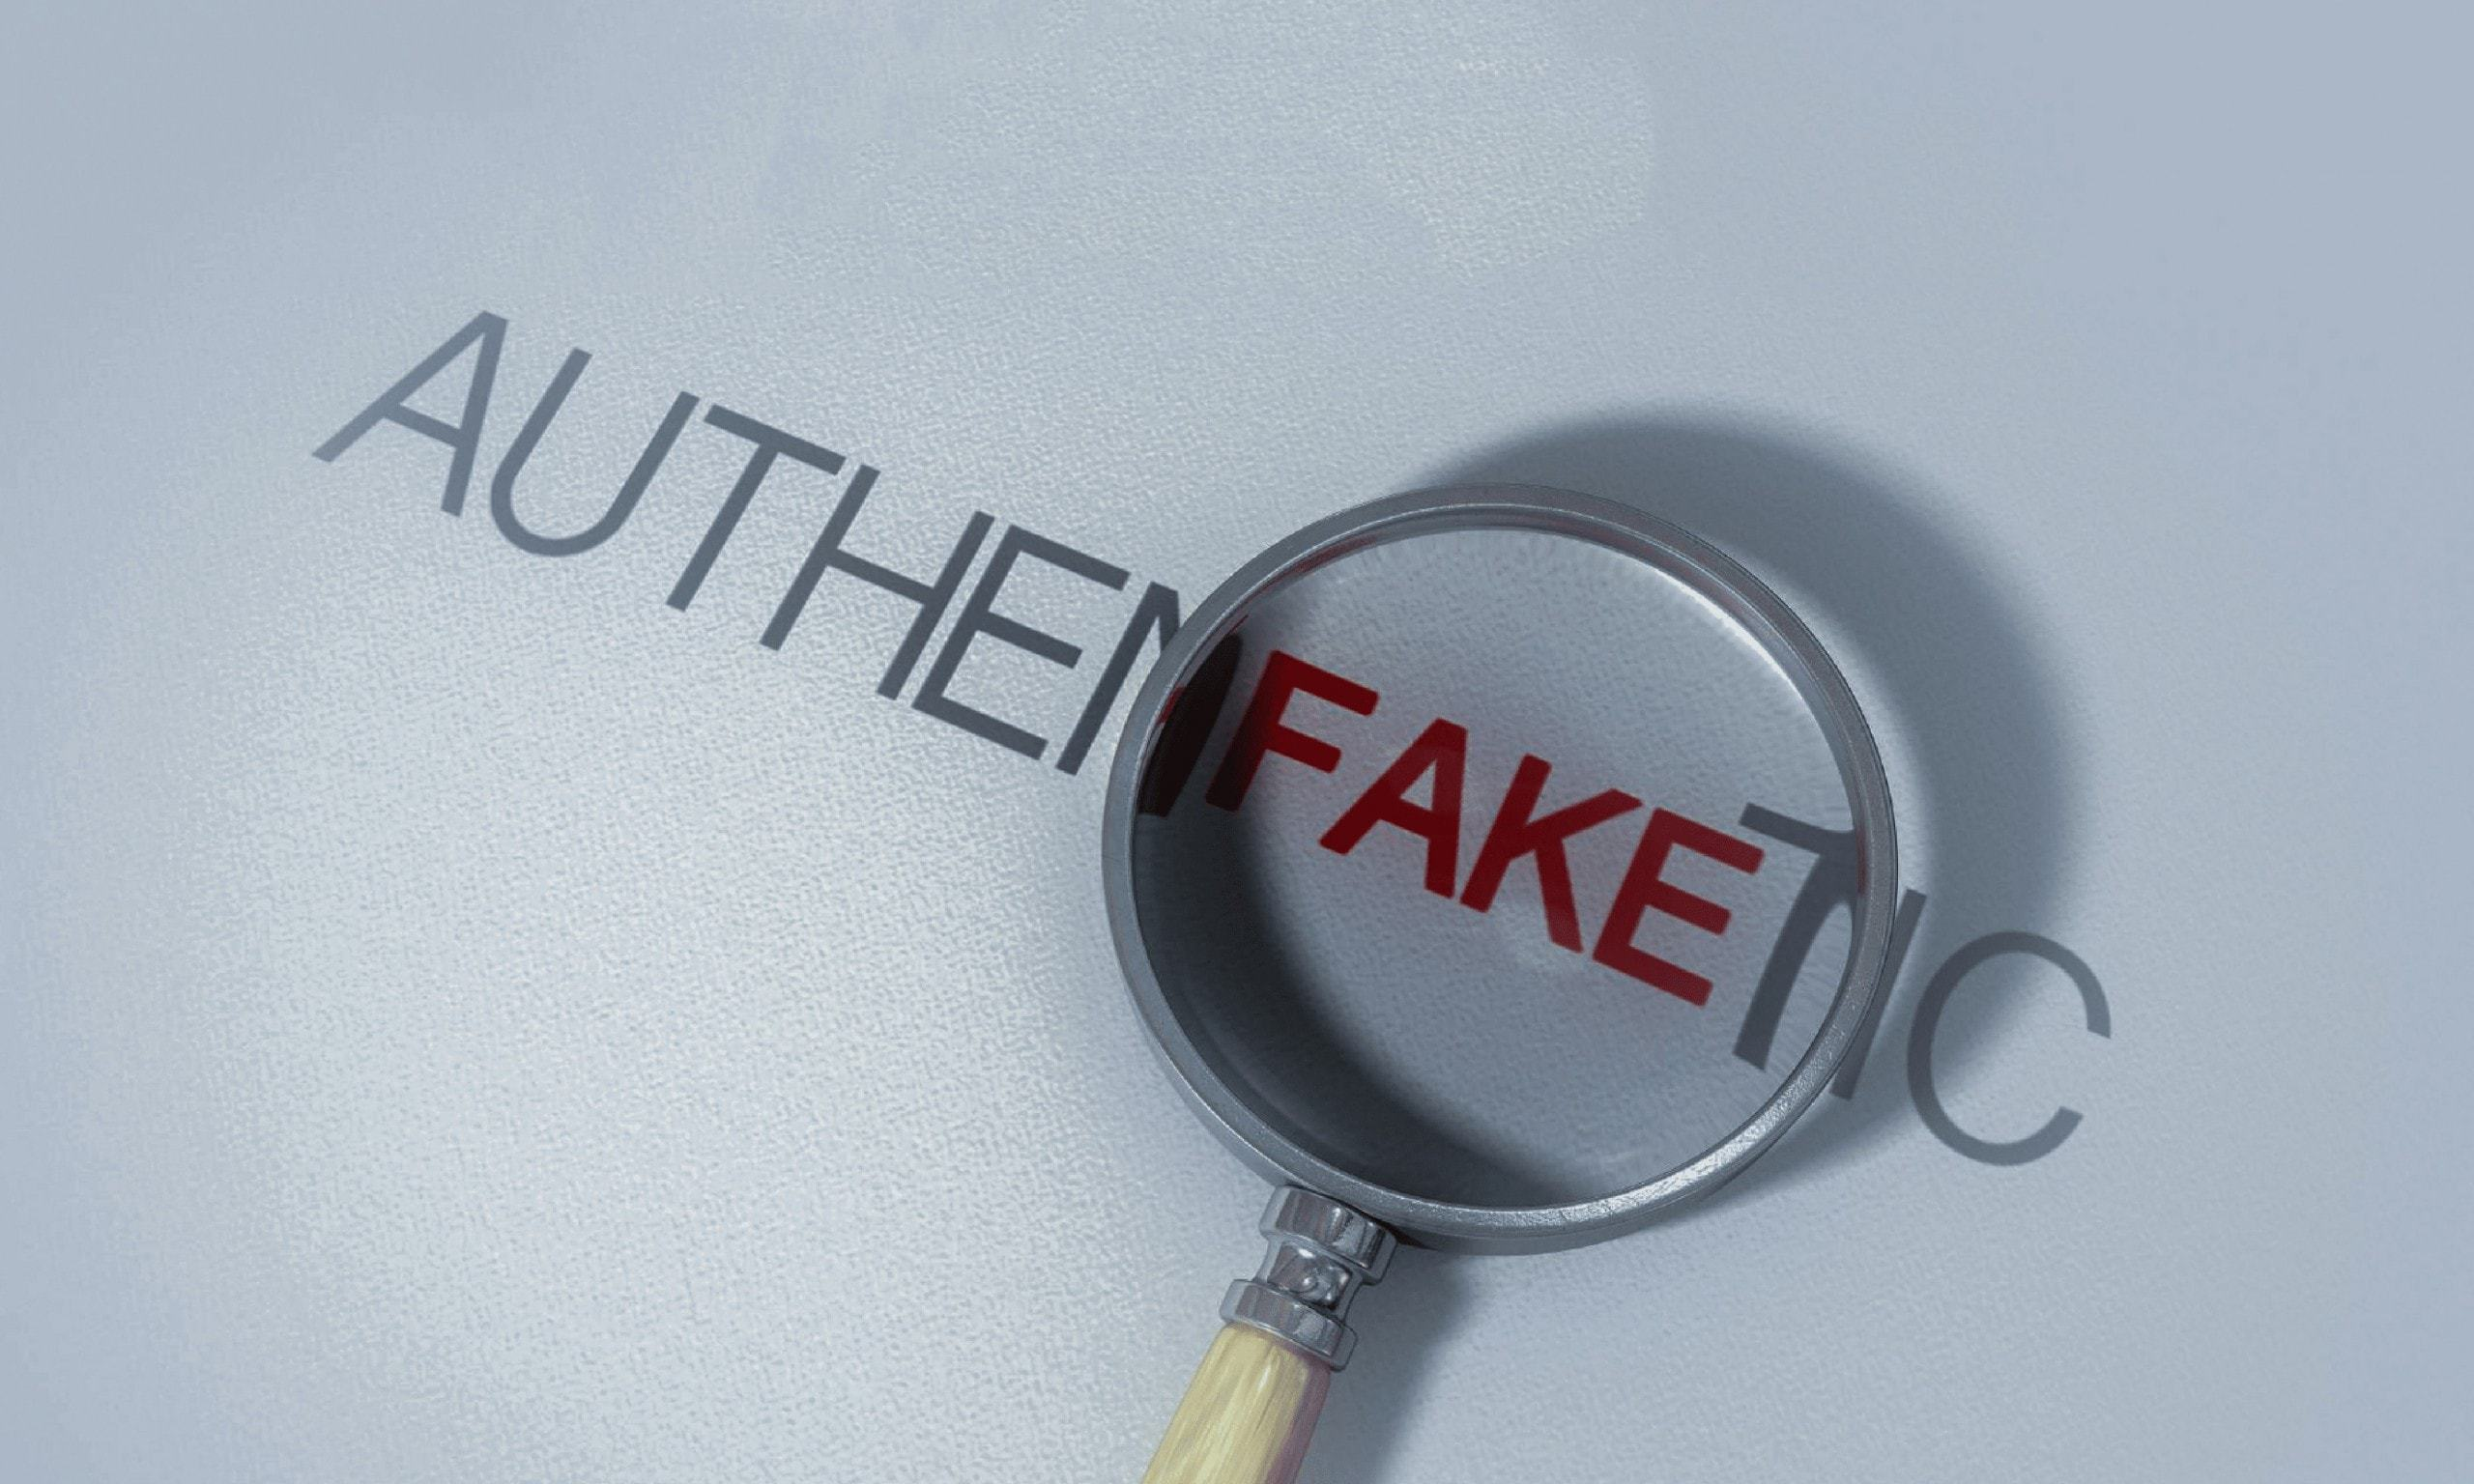 Scanning to tell whether product is genuine or fake.